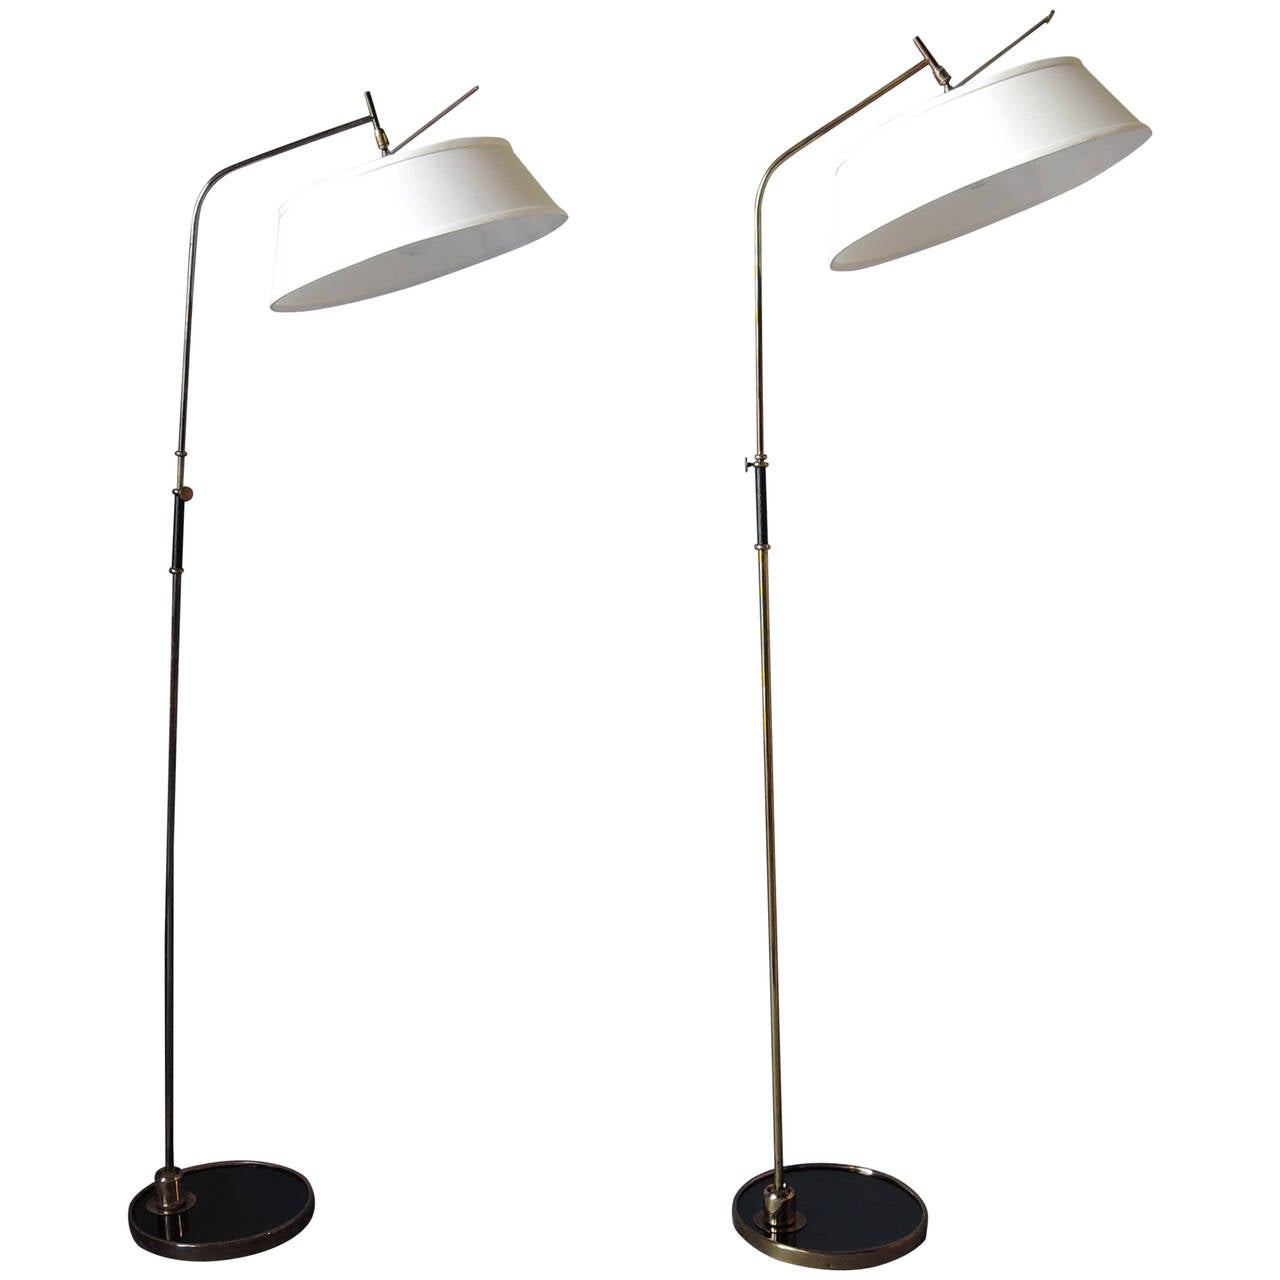 Two Fine 1950s French Floor Lamps by Lunel